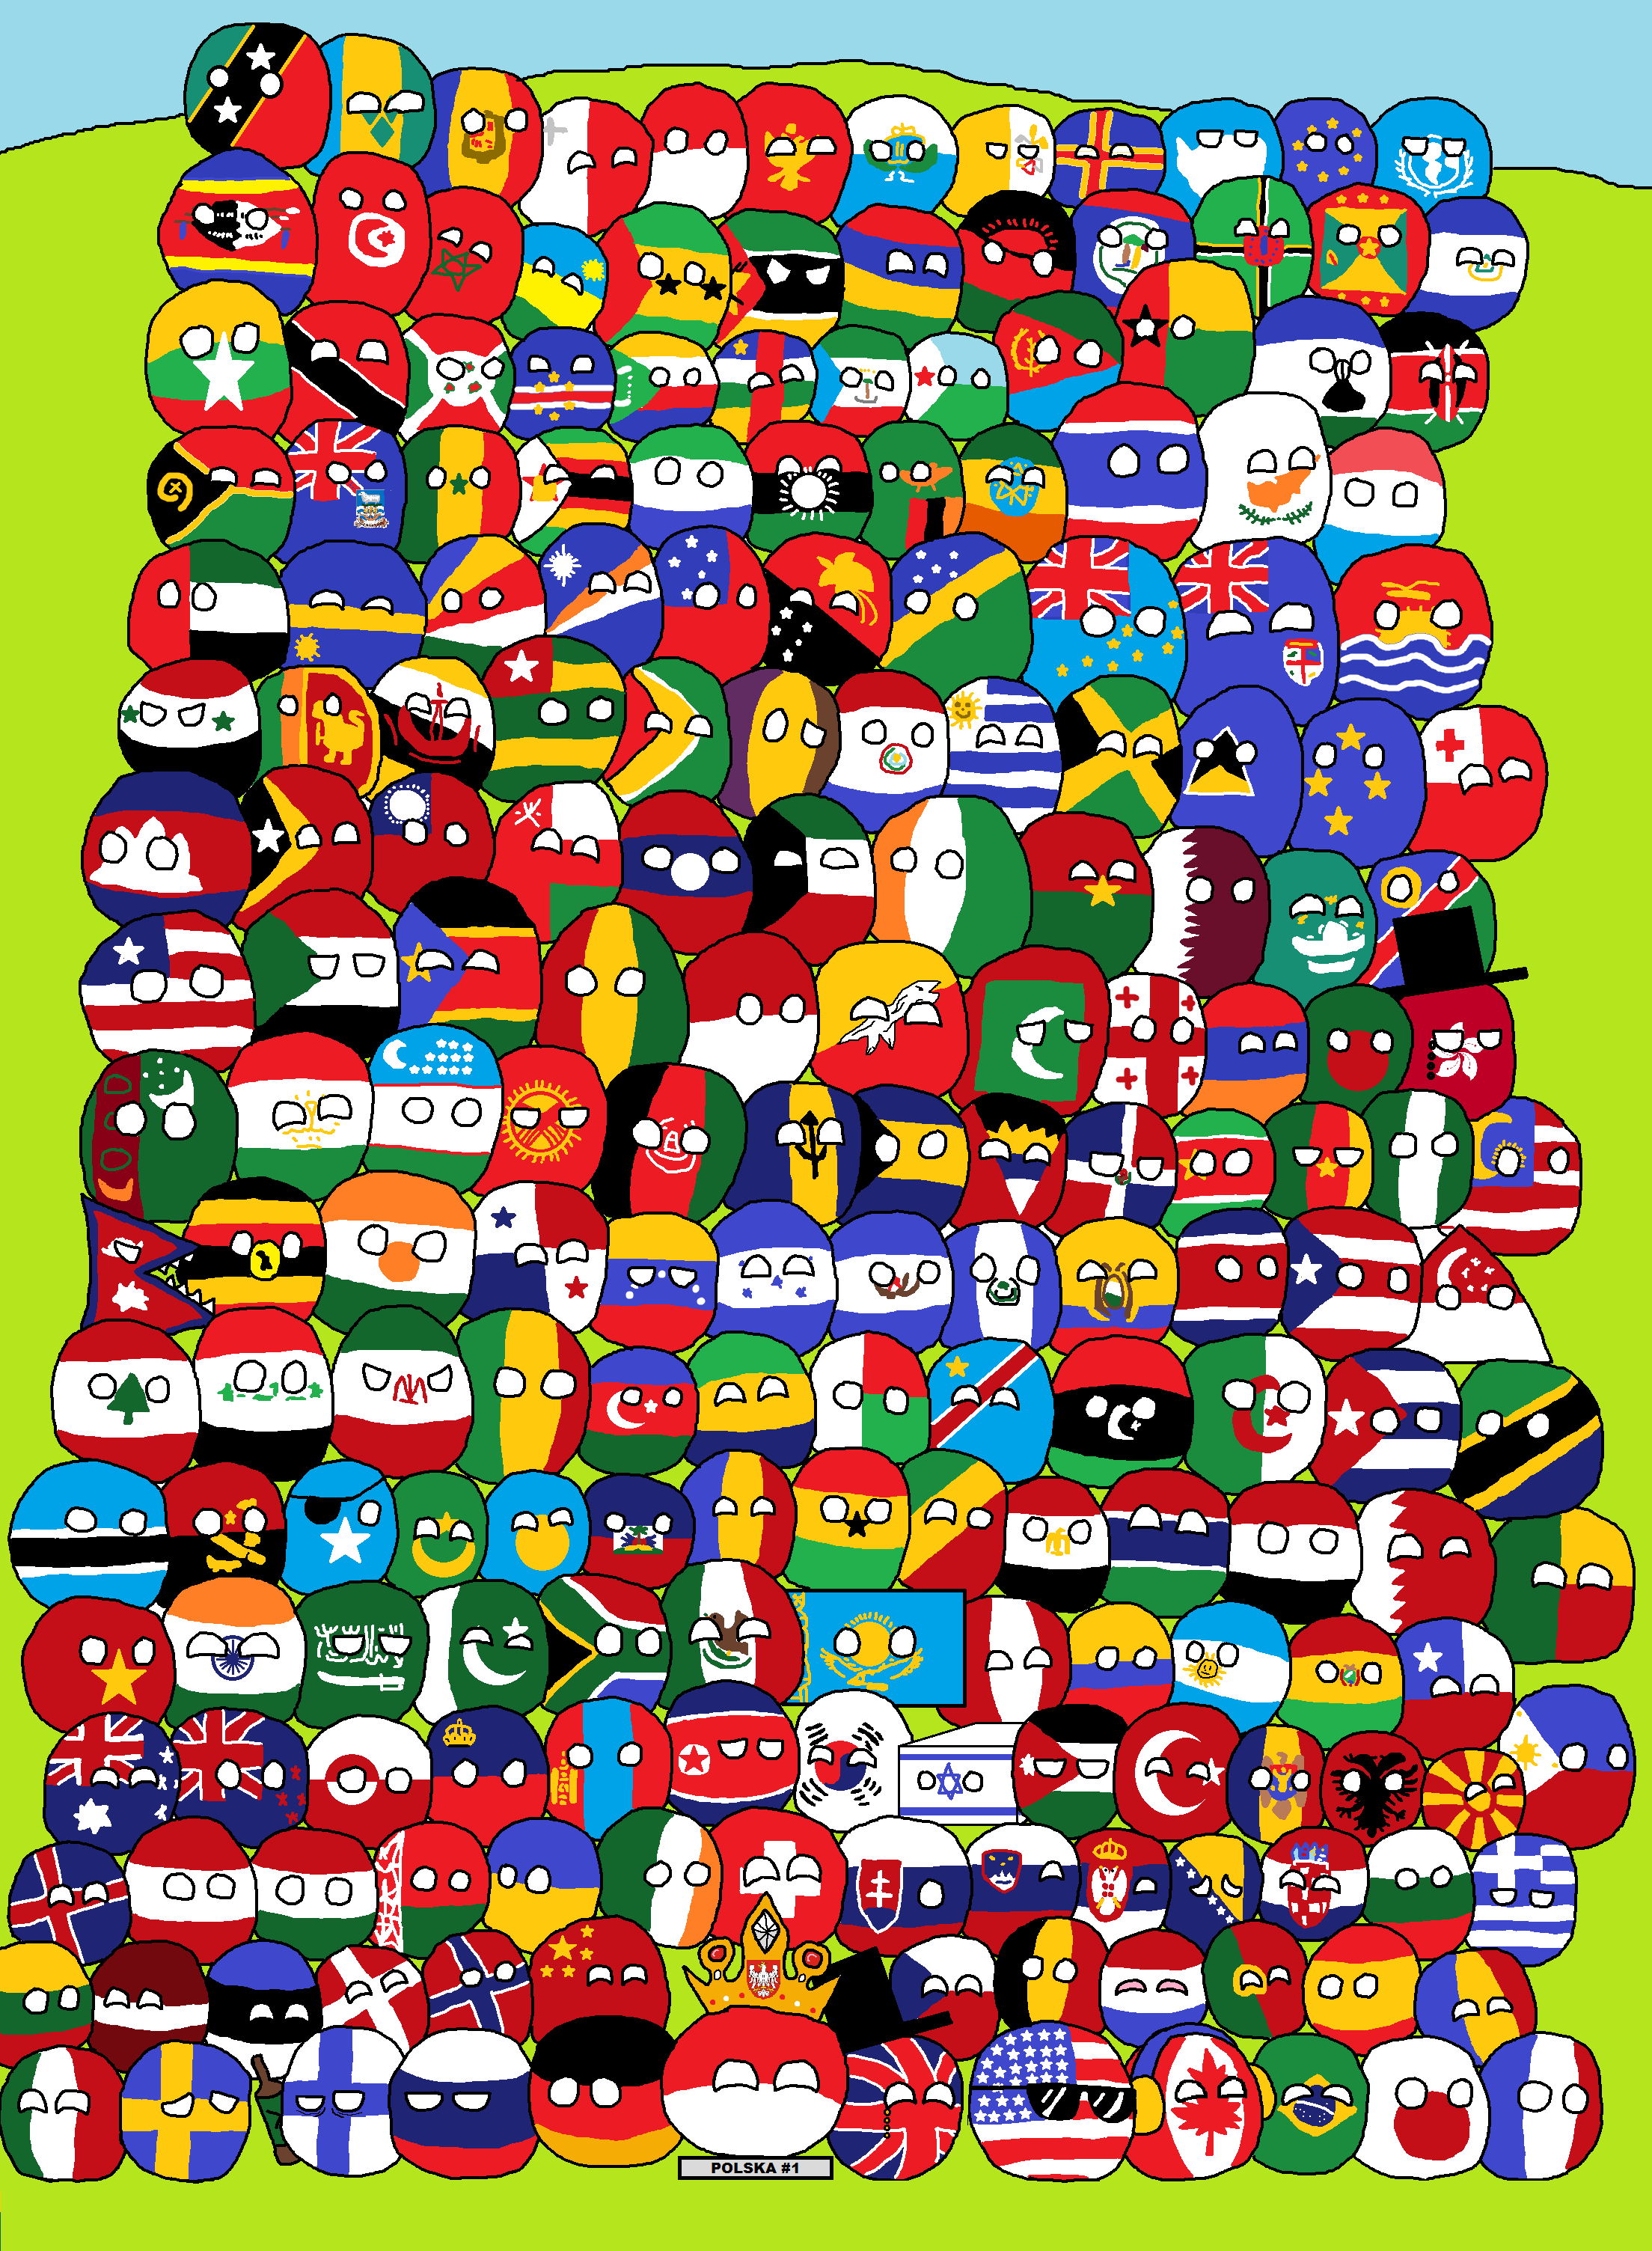 Description countries of the world polandball